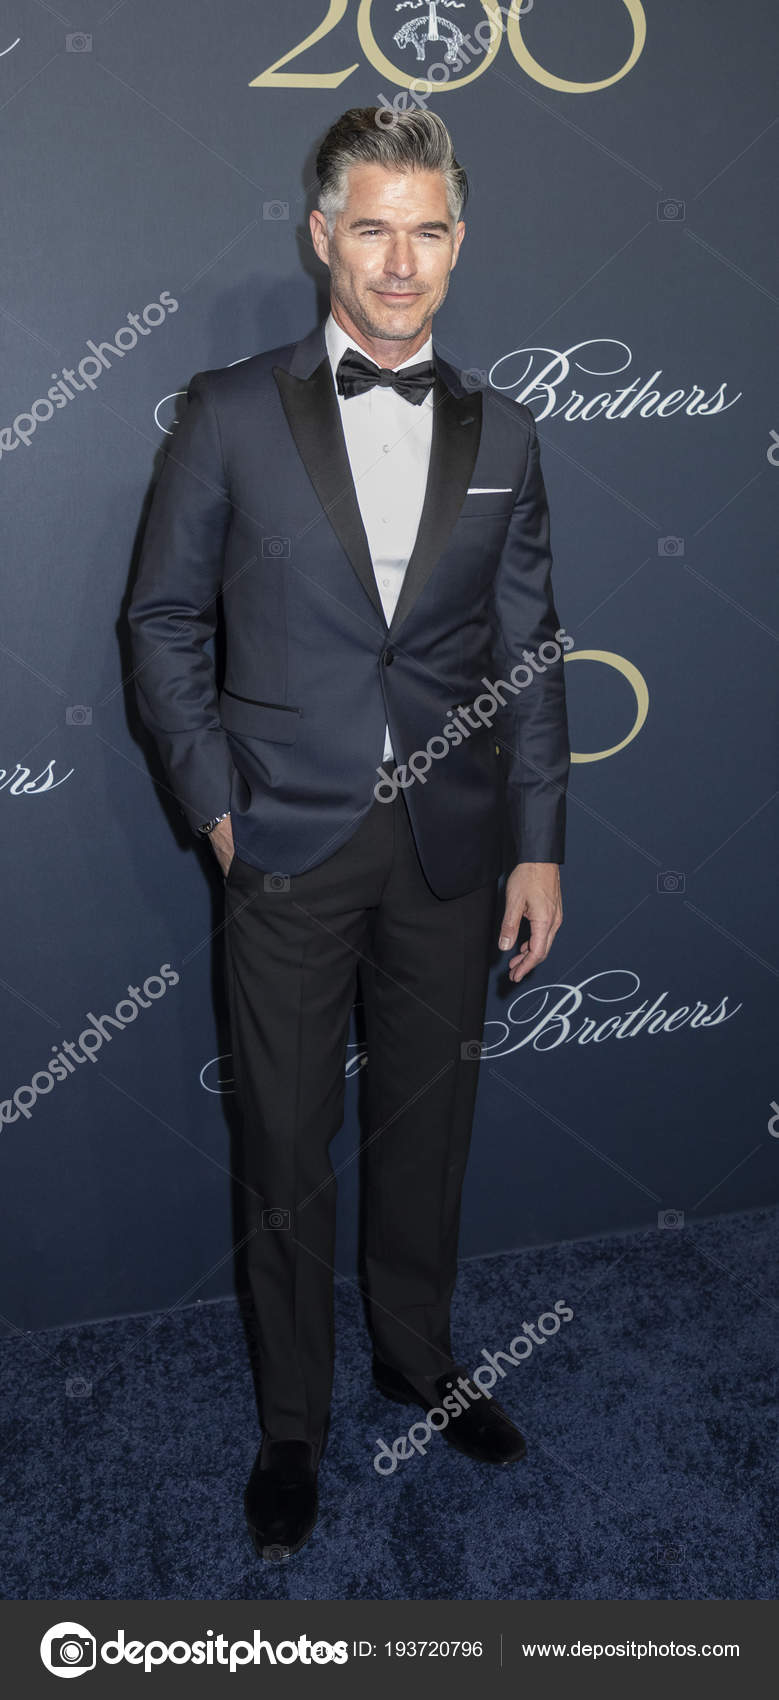 04975dbce5fc New York, NY, USA - April 25, 2018: actor Eric Rutherford attends the Brooks  Brothers Bicentennial Celebration at Jazz At Lincoln Center, Manhattan —  Photo ...